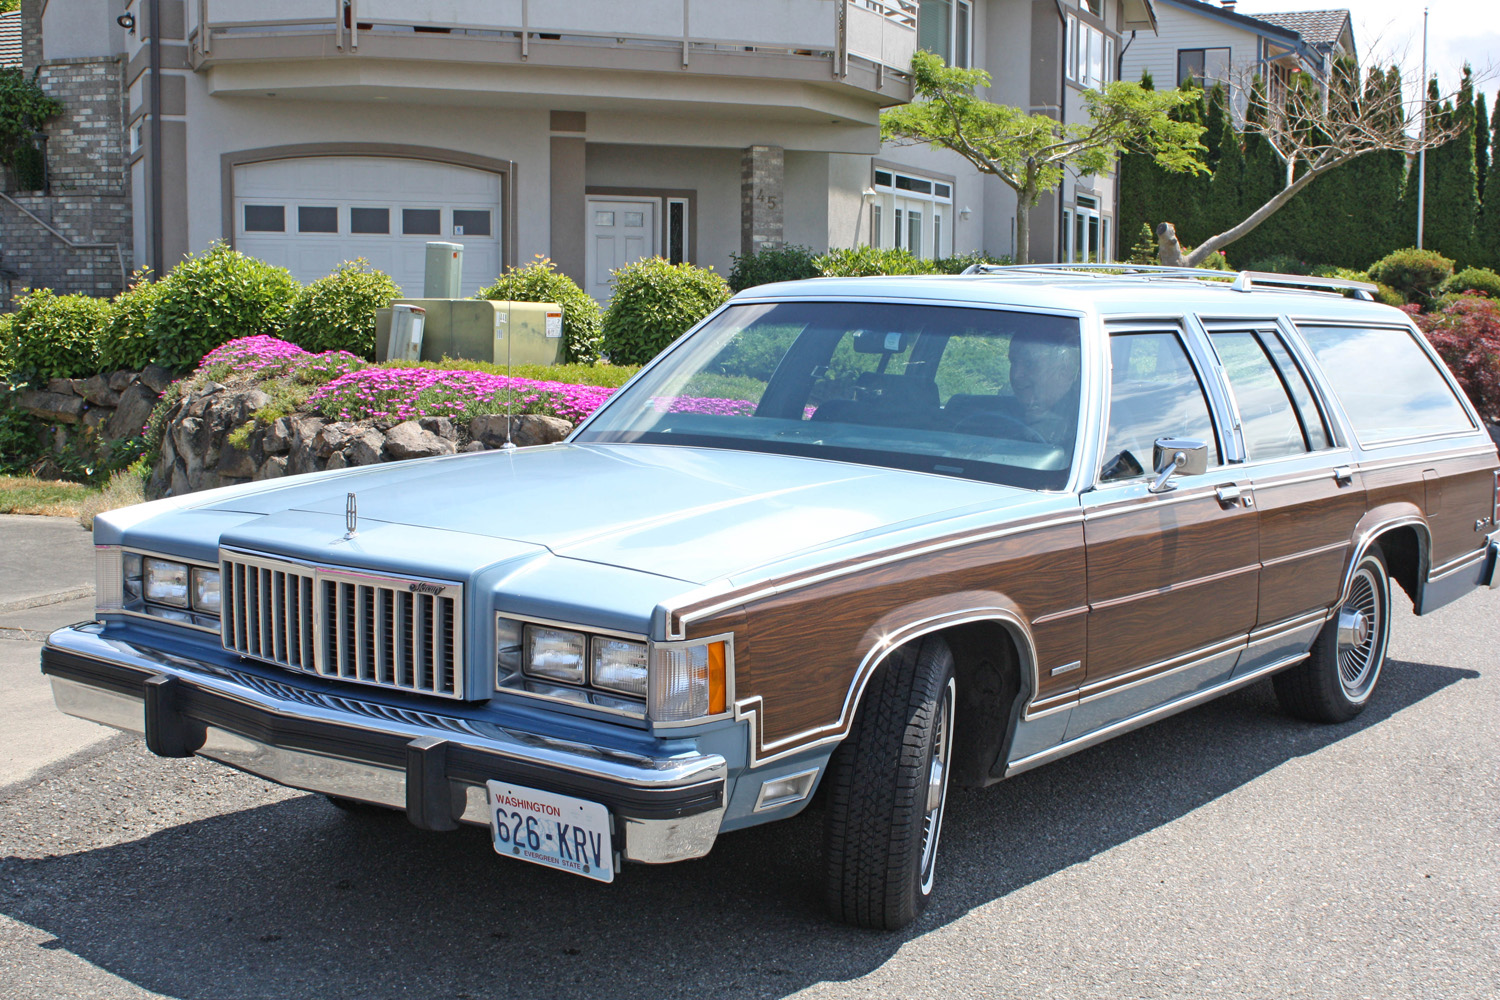 driven by dad  the 1983 colony park wagon